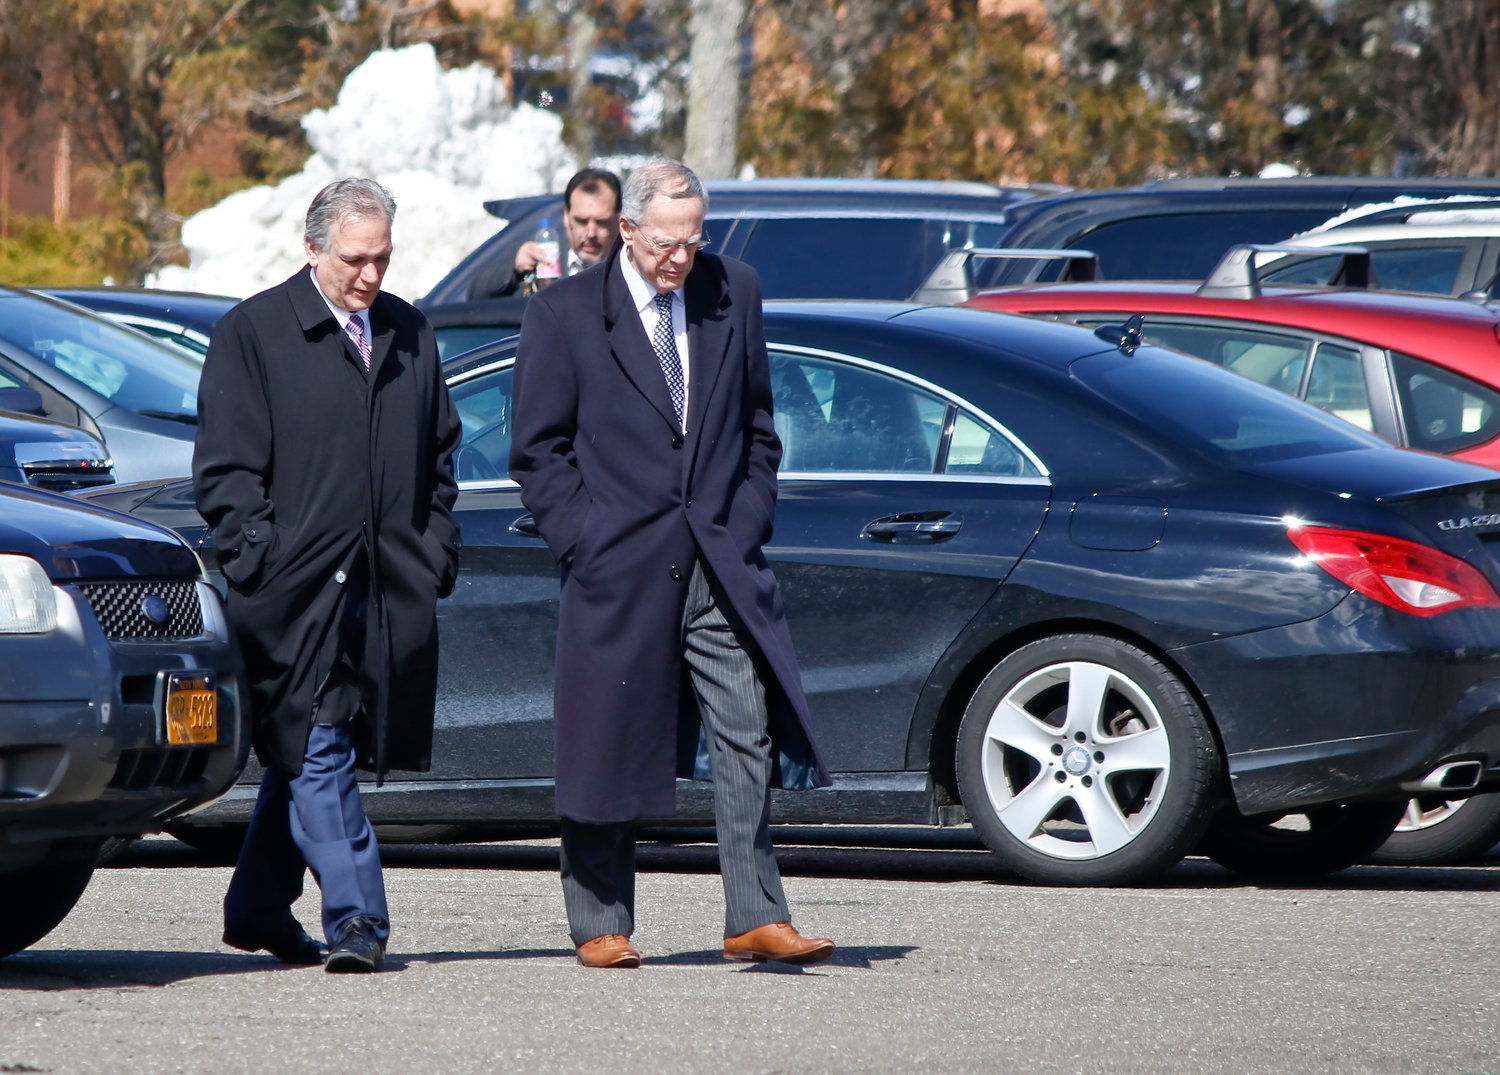 Former Nassau County Executive Ed Mangano, left, is being retried on charges that he accepted bribes from restaurateur Harendra Singh for political favors.